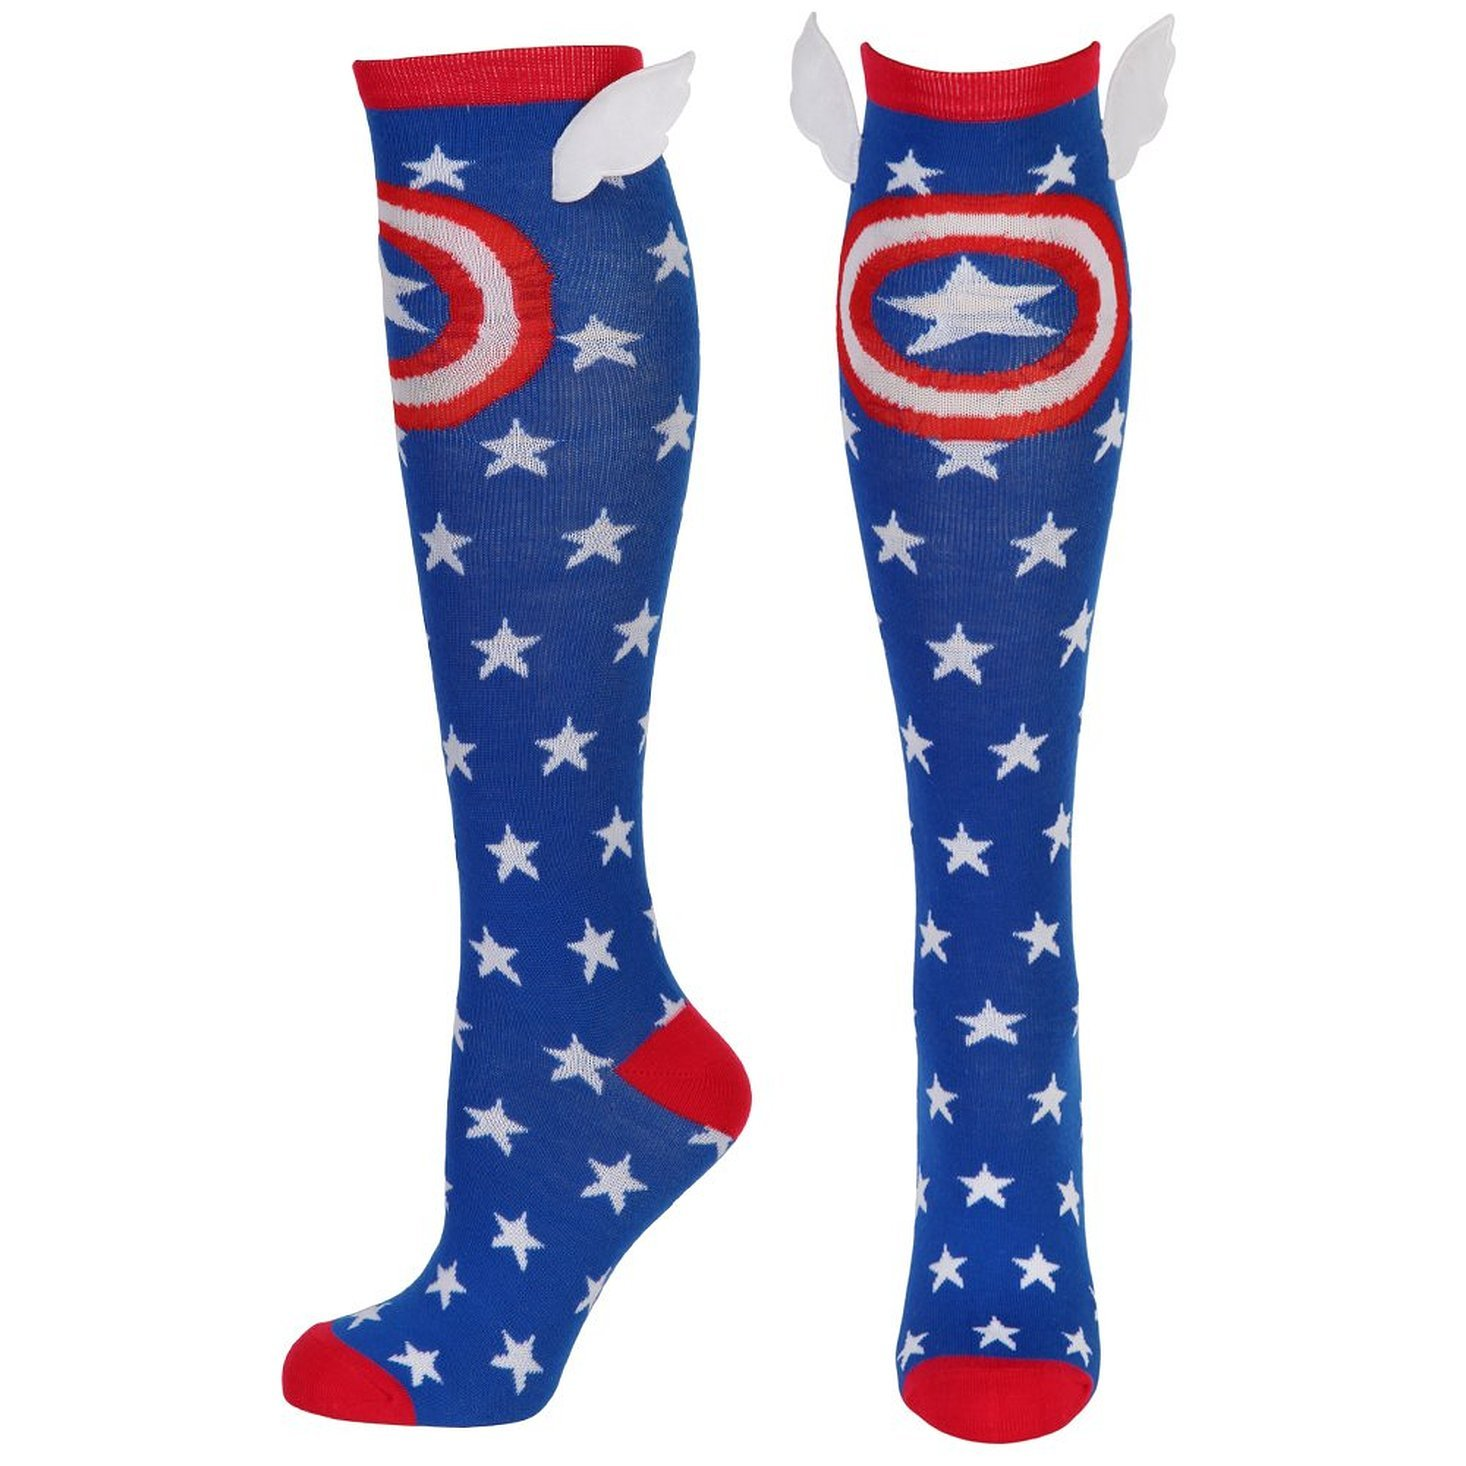 Captain America Knee High Socks with WIngs KH2SDWMVL00PP00